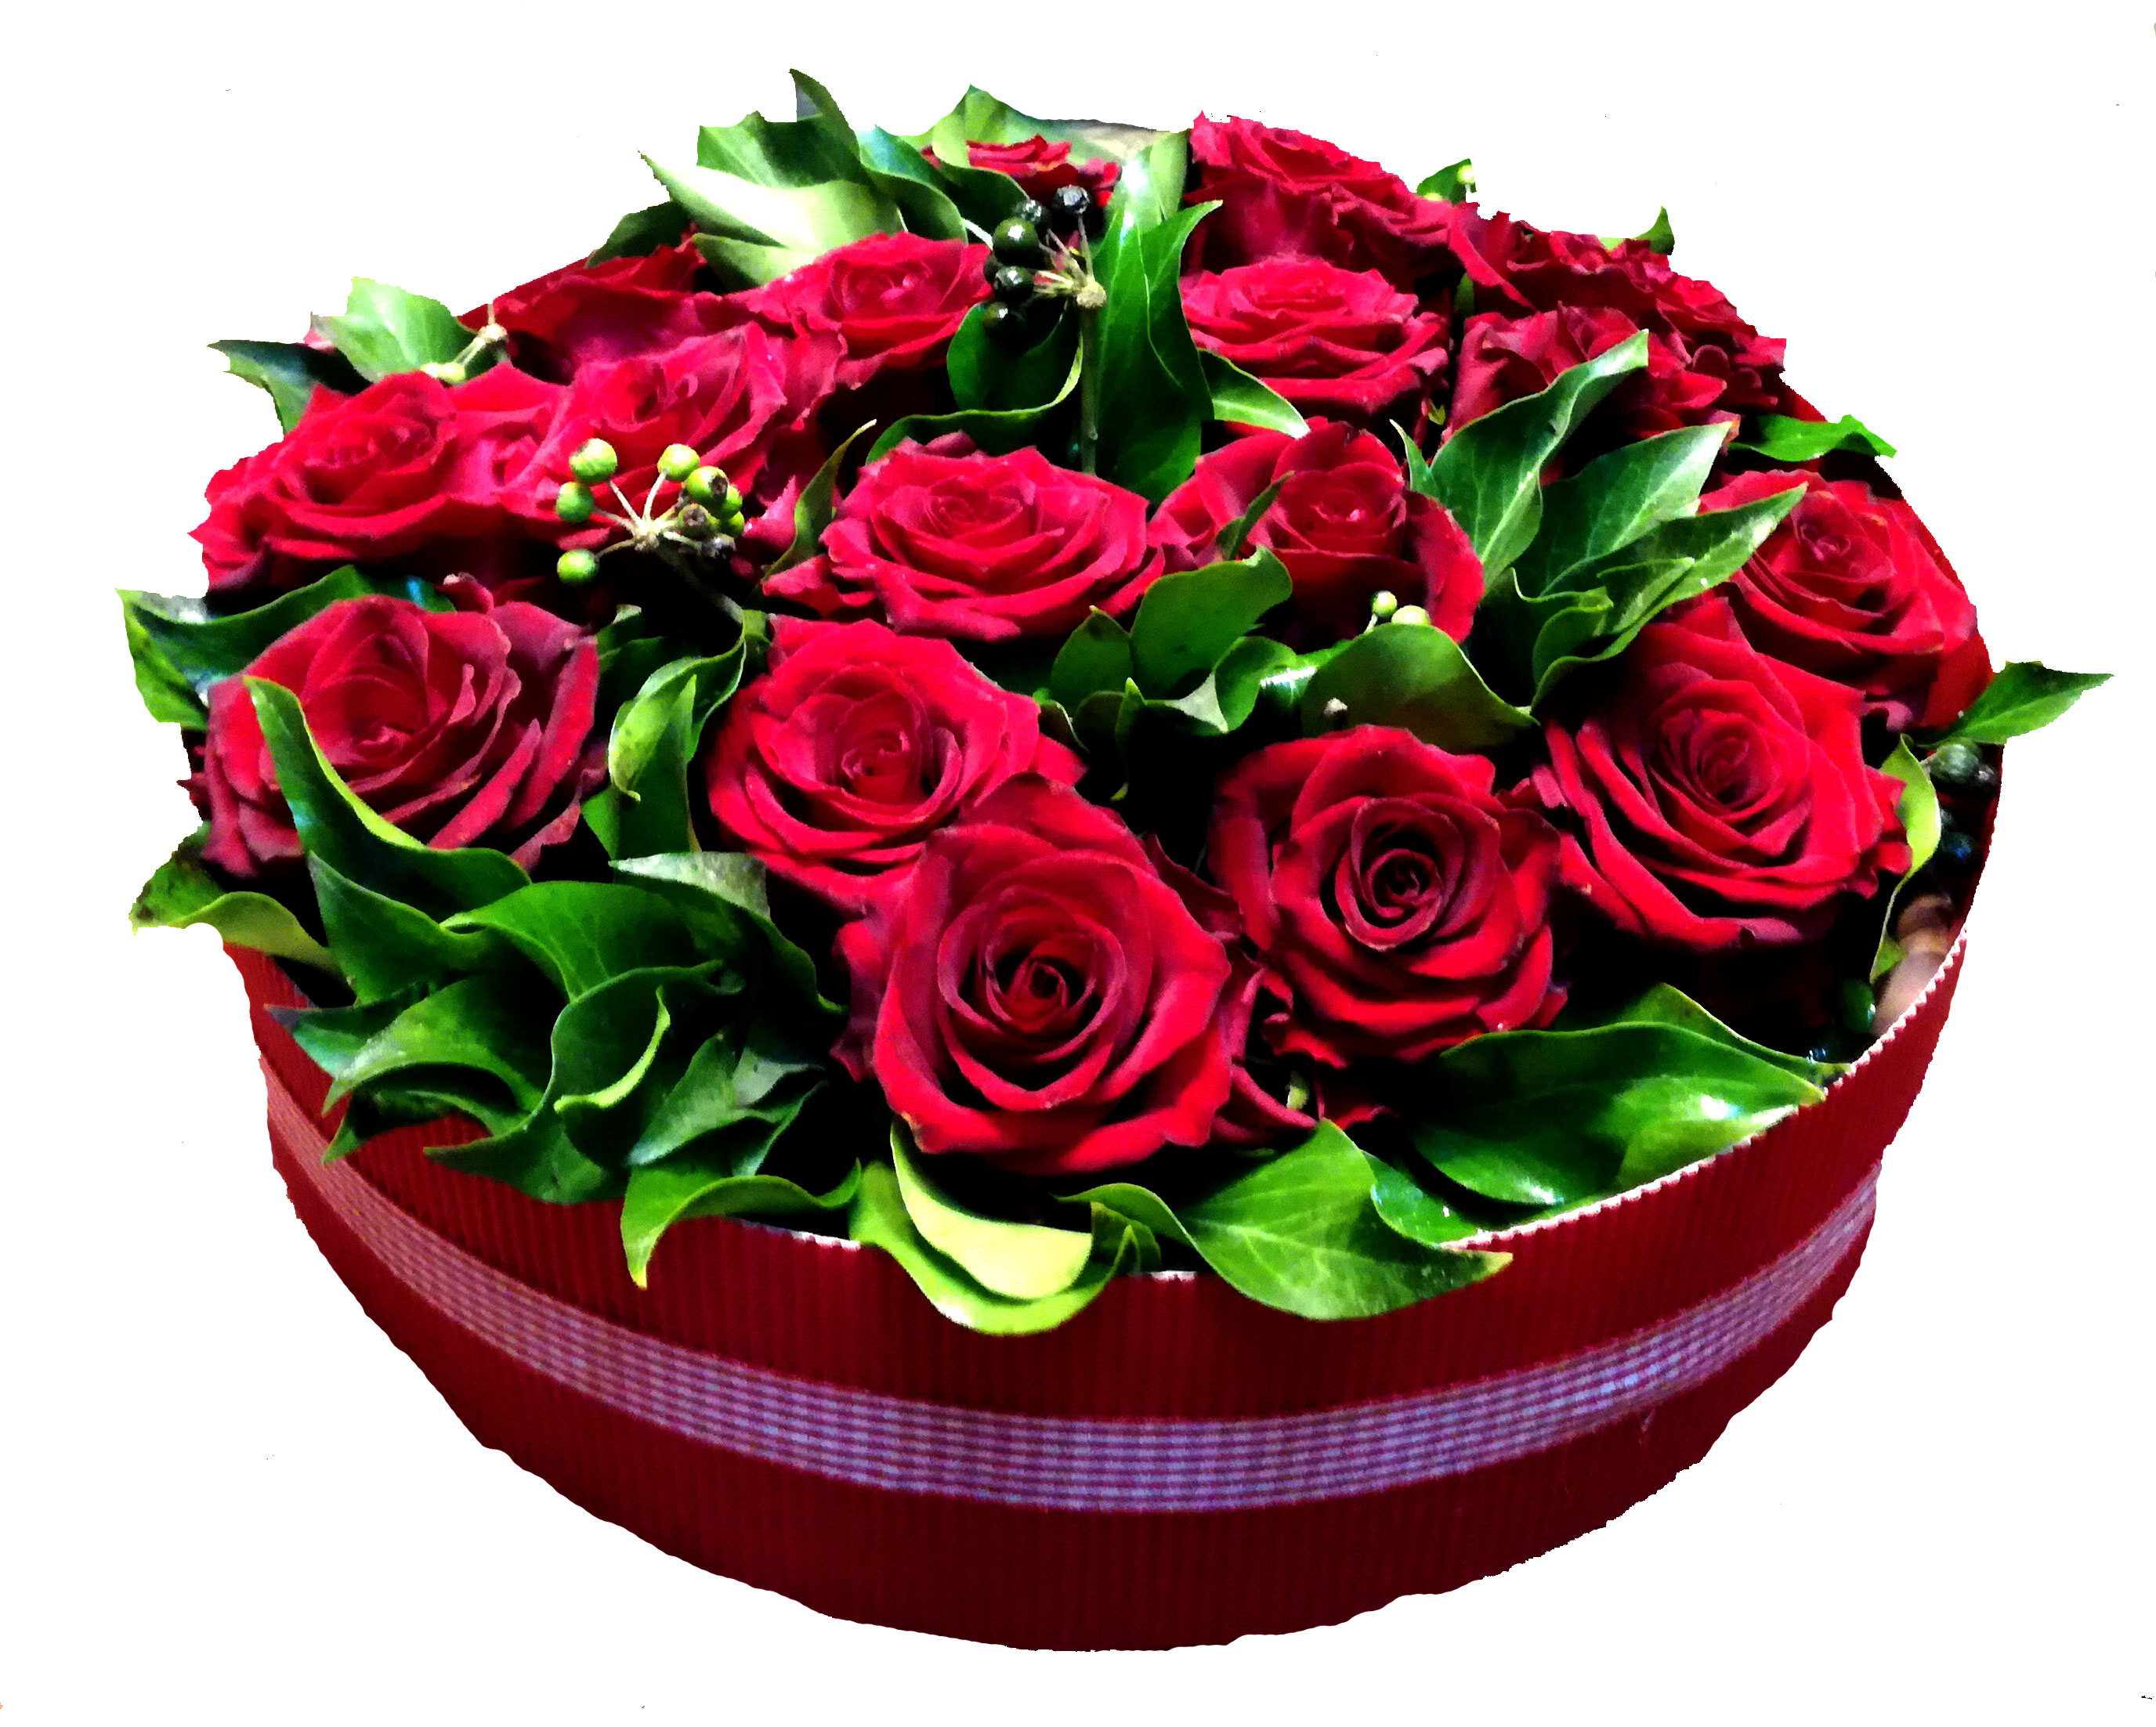 gateau de roses rouges